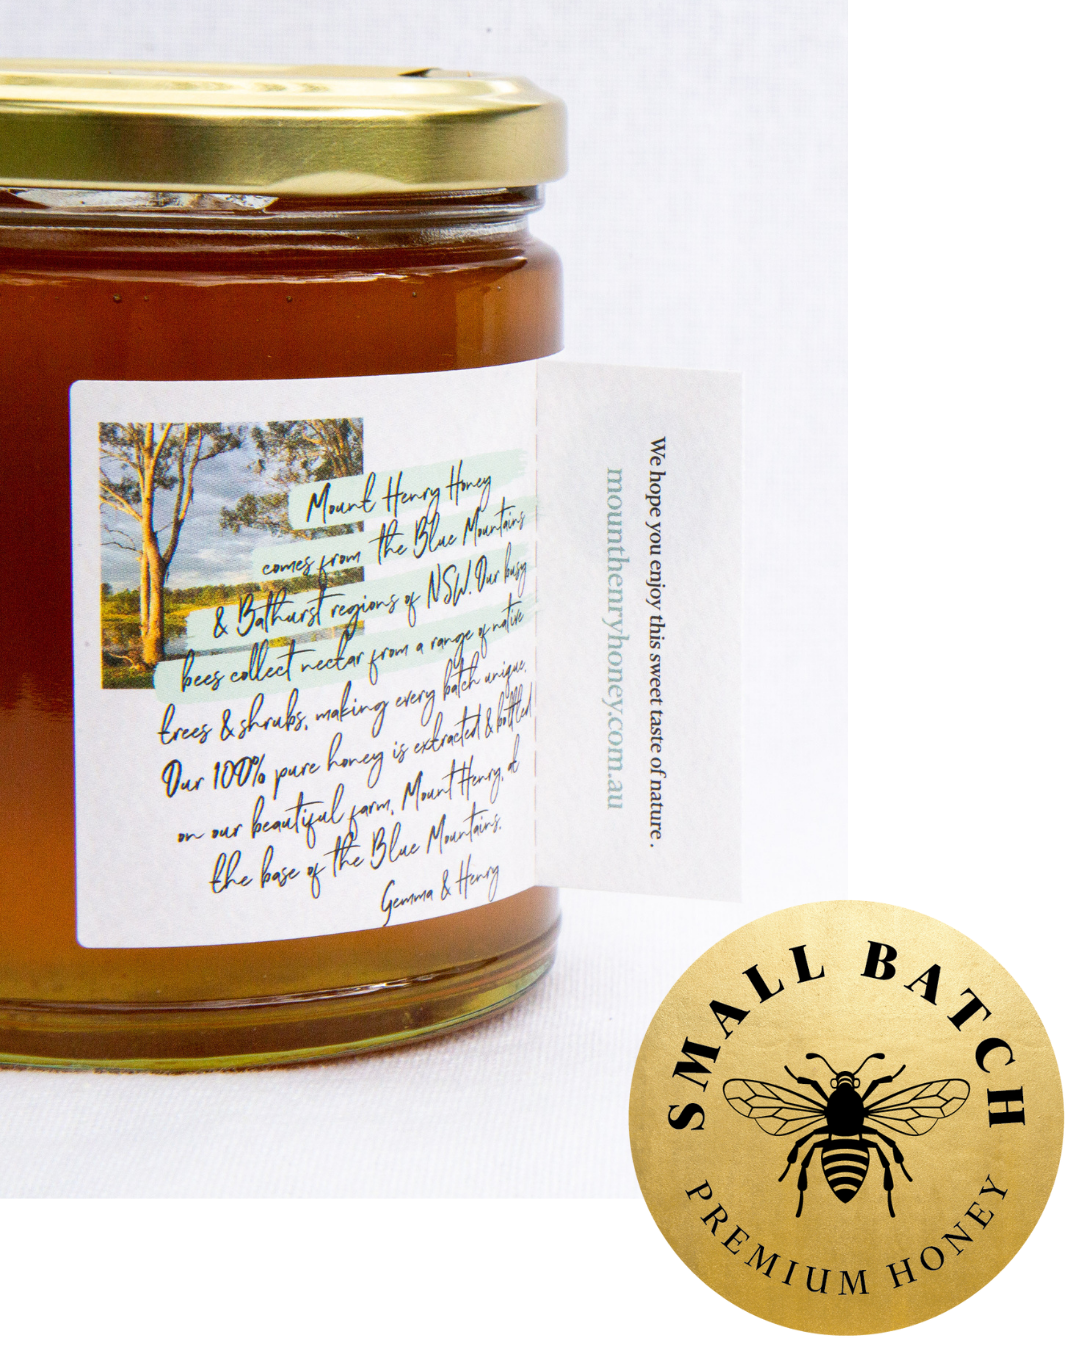 Mount Henry Honey as a Gift